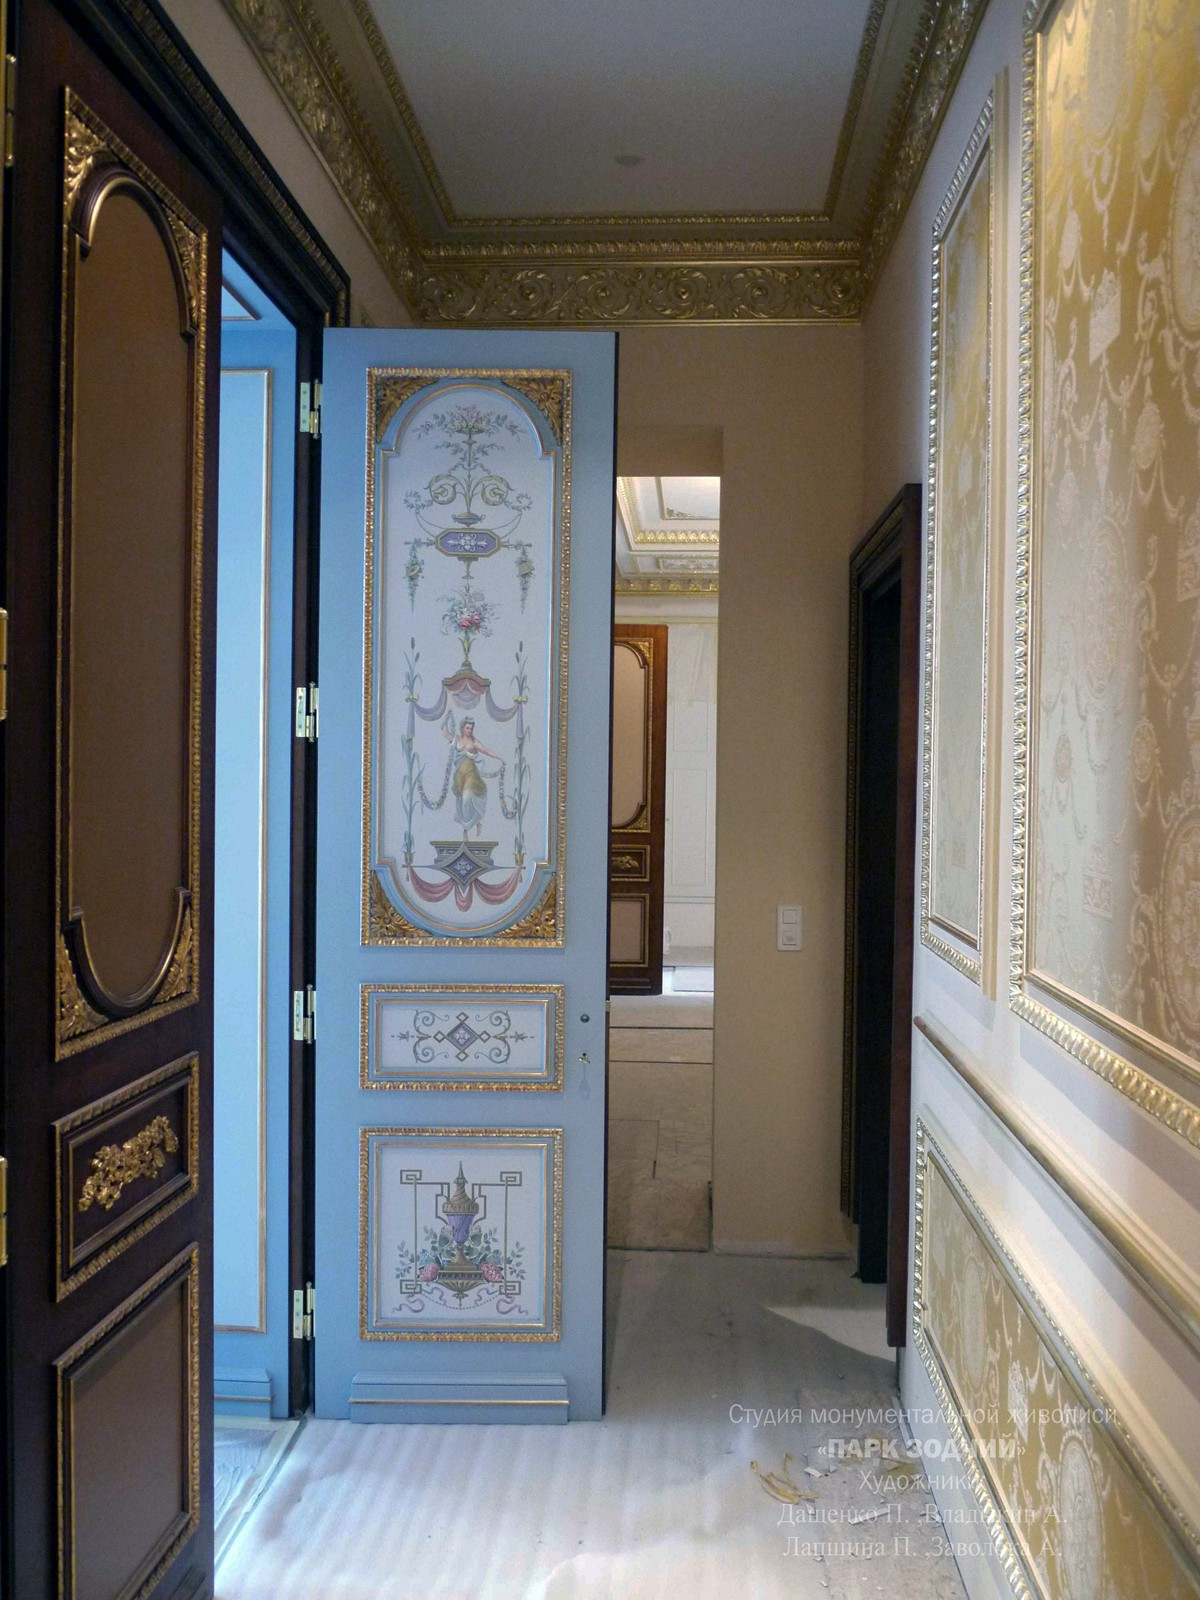 Painted door in interior